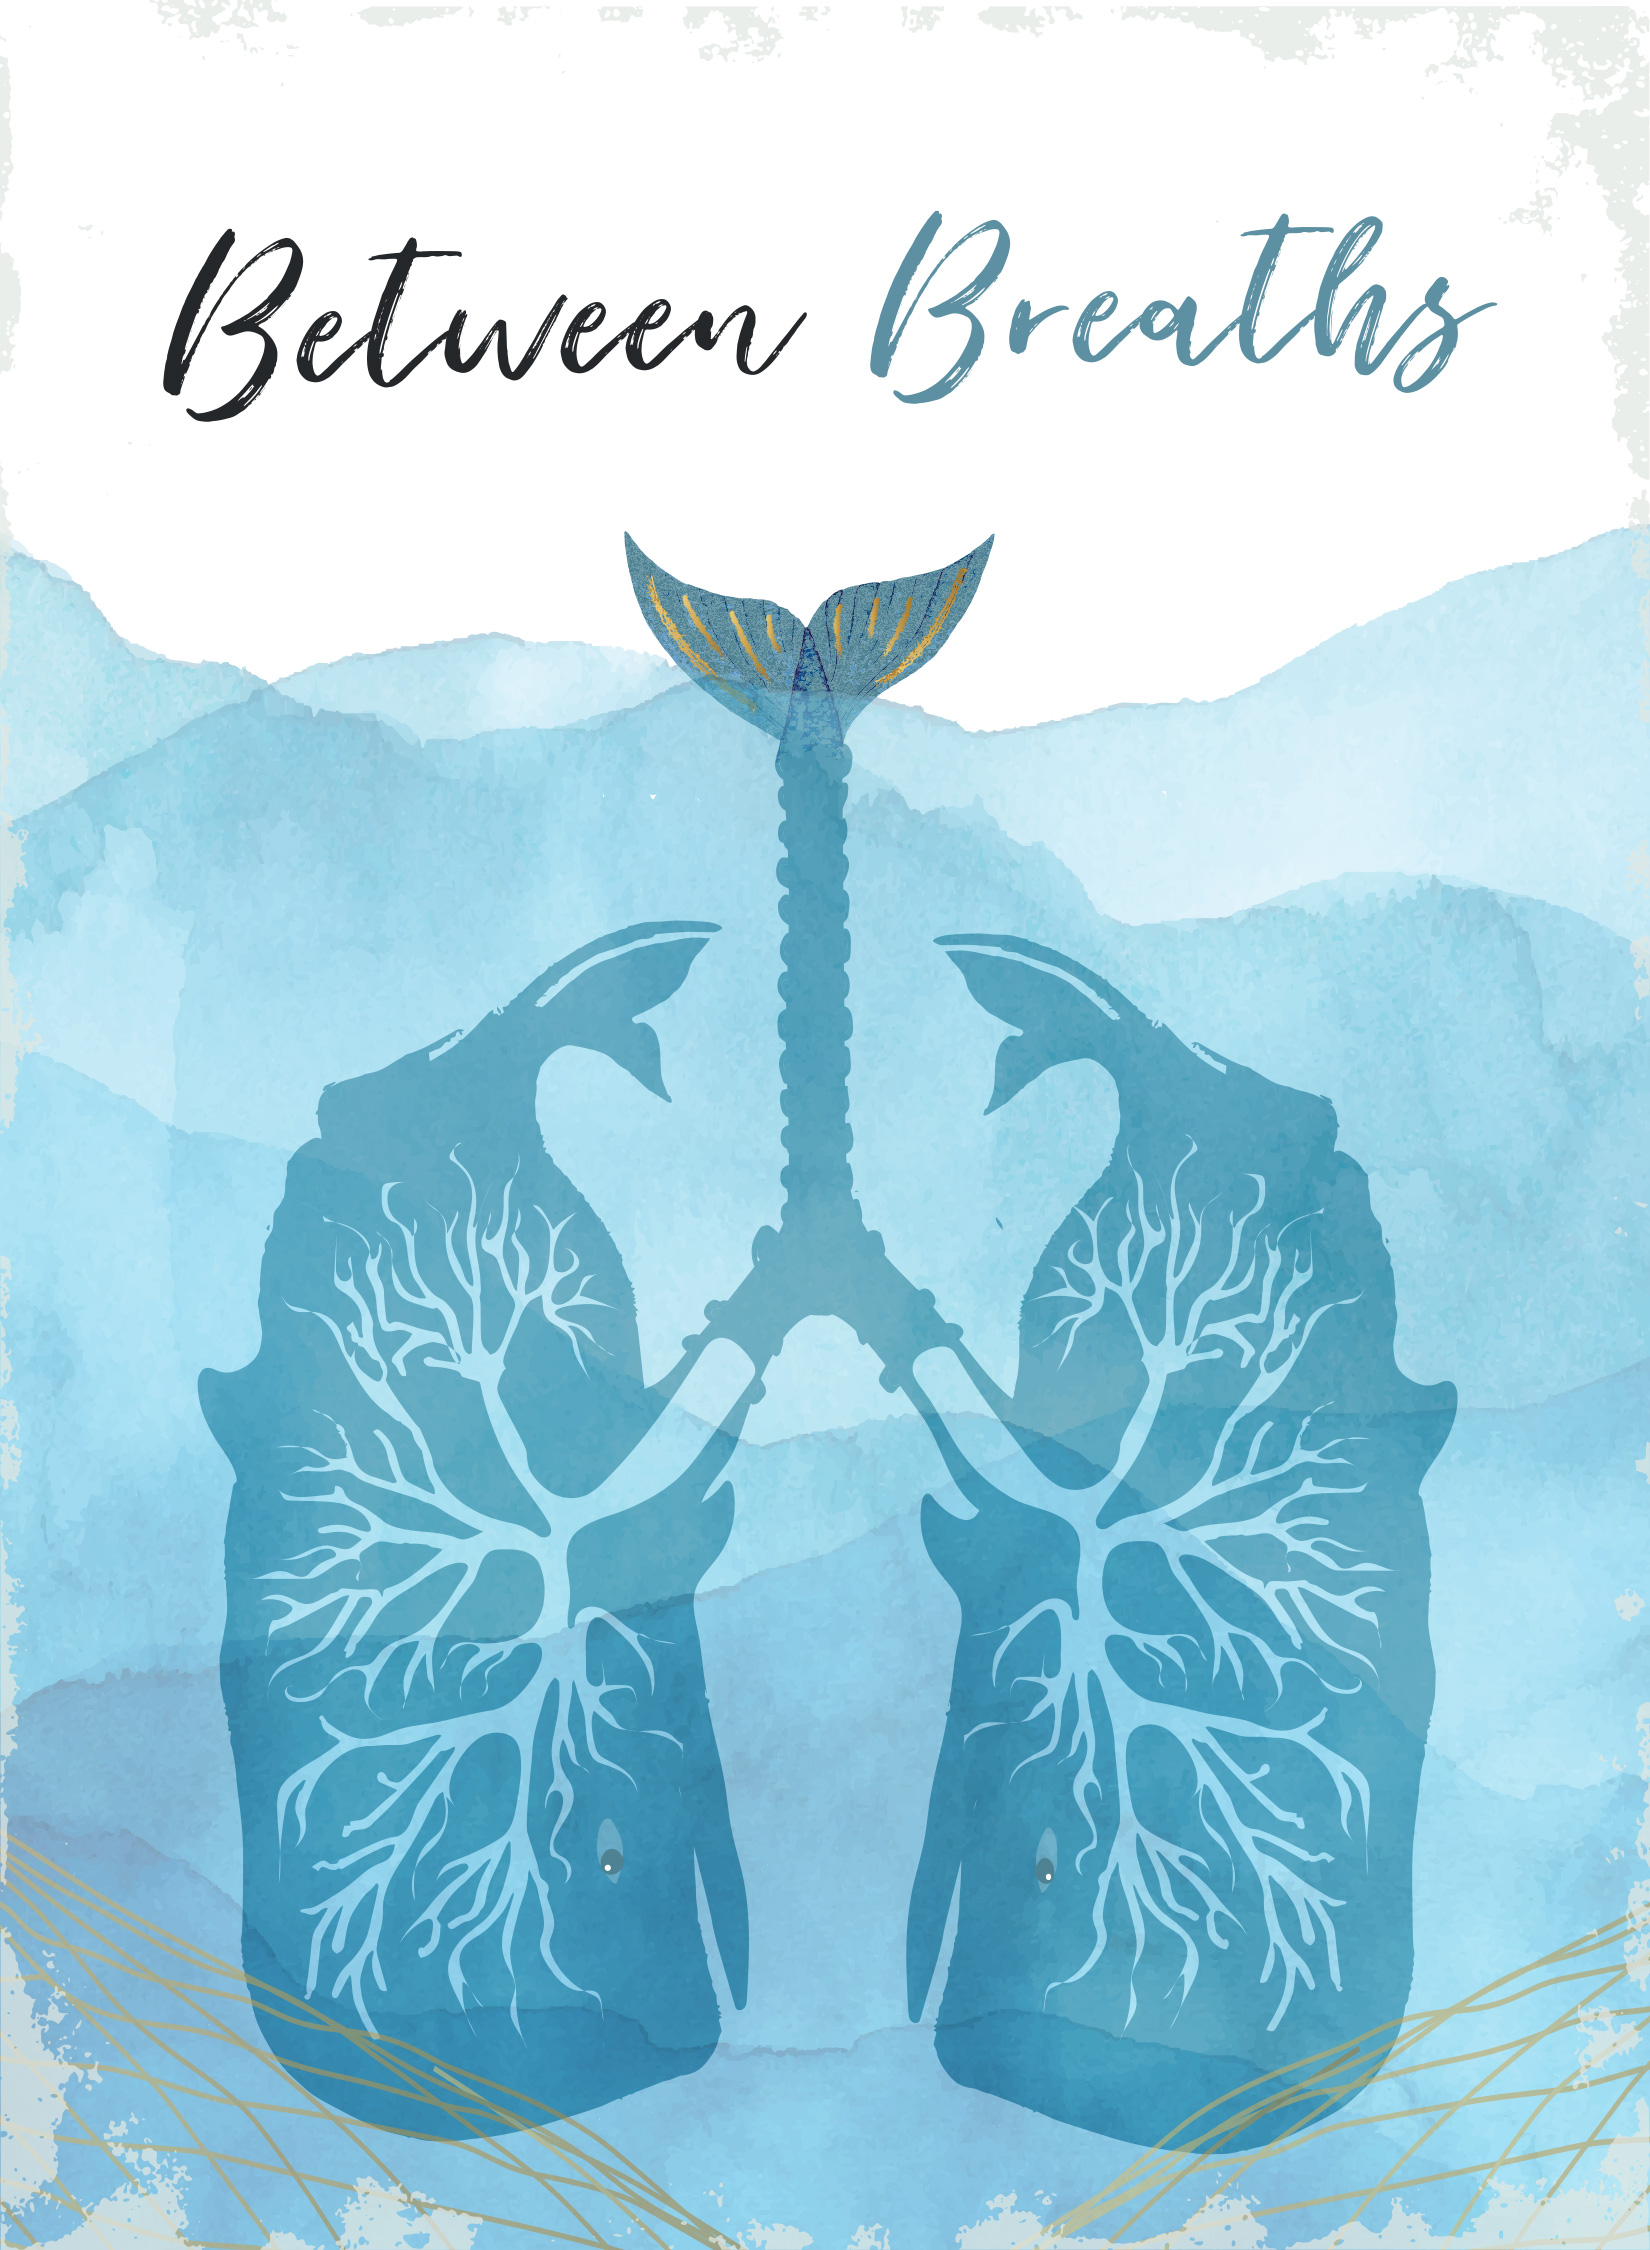 Between Breaths original art